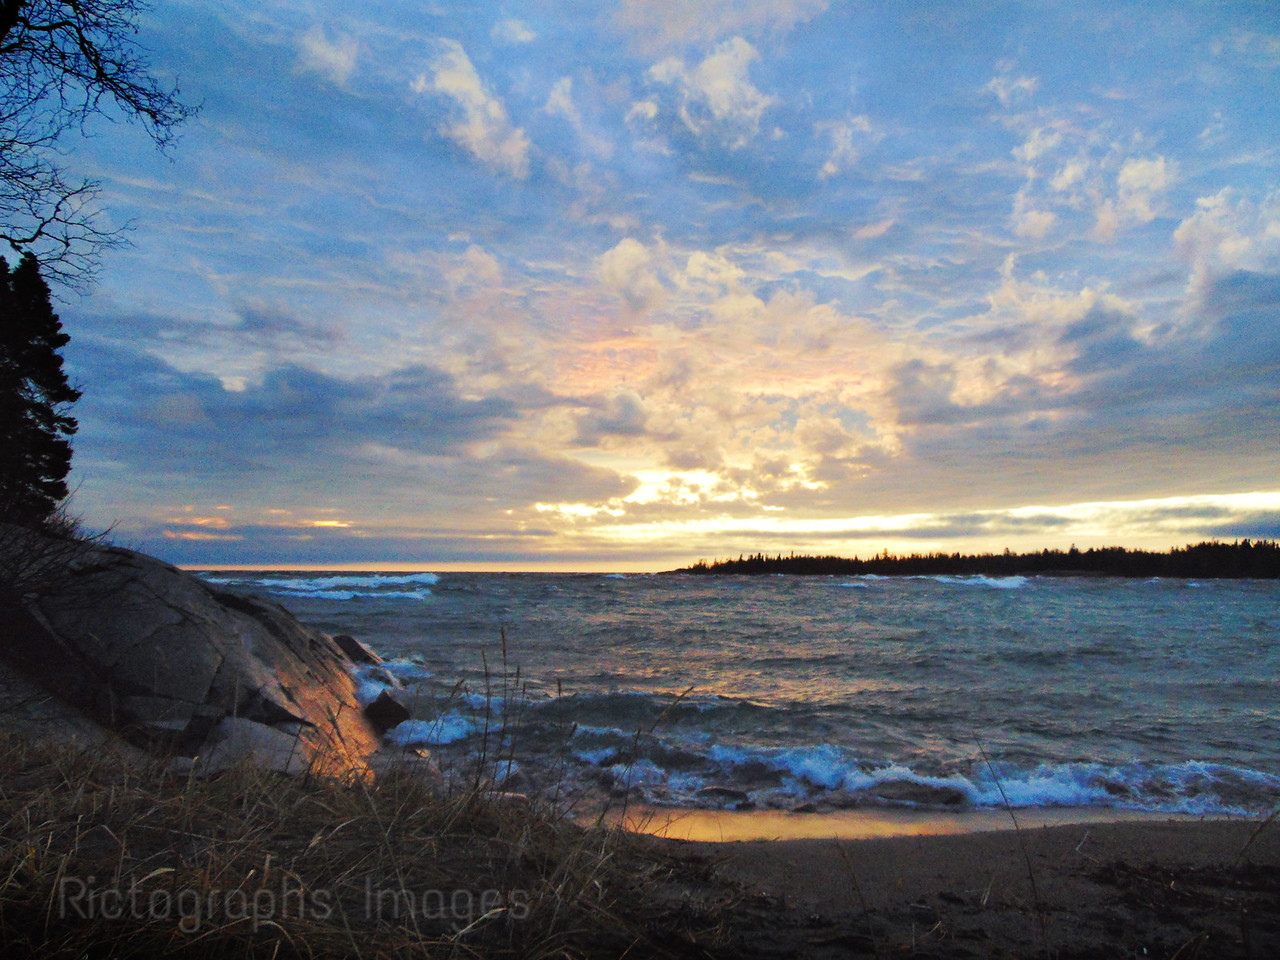 A Lake Superior Landscape Photo, Rictographs Images